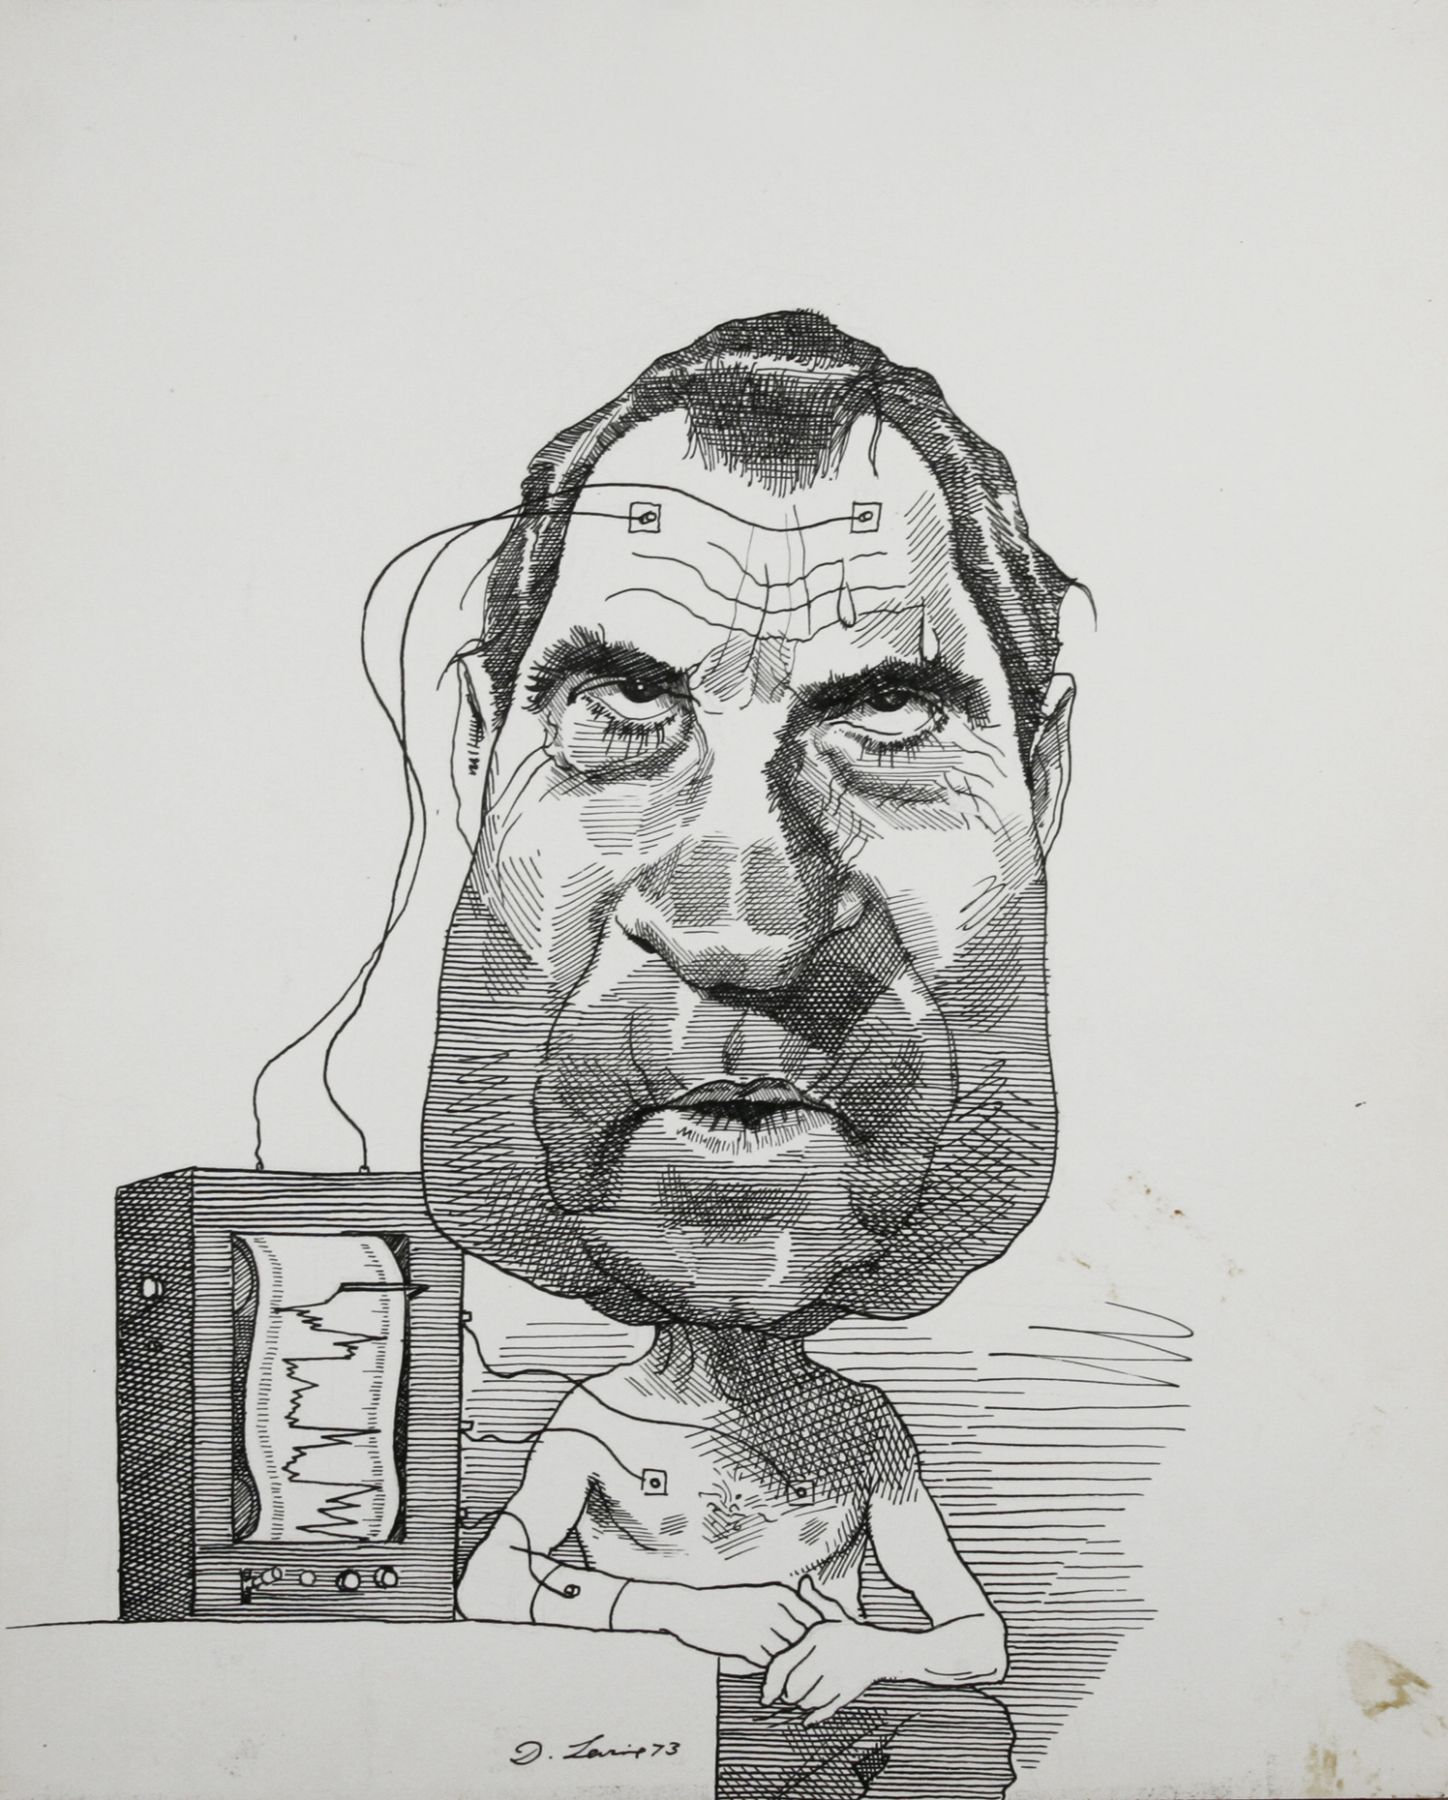 David Levine, Nixon & Lie Detector, 1973, ink on paper, 13 3/4 x 11 inches